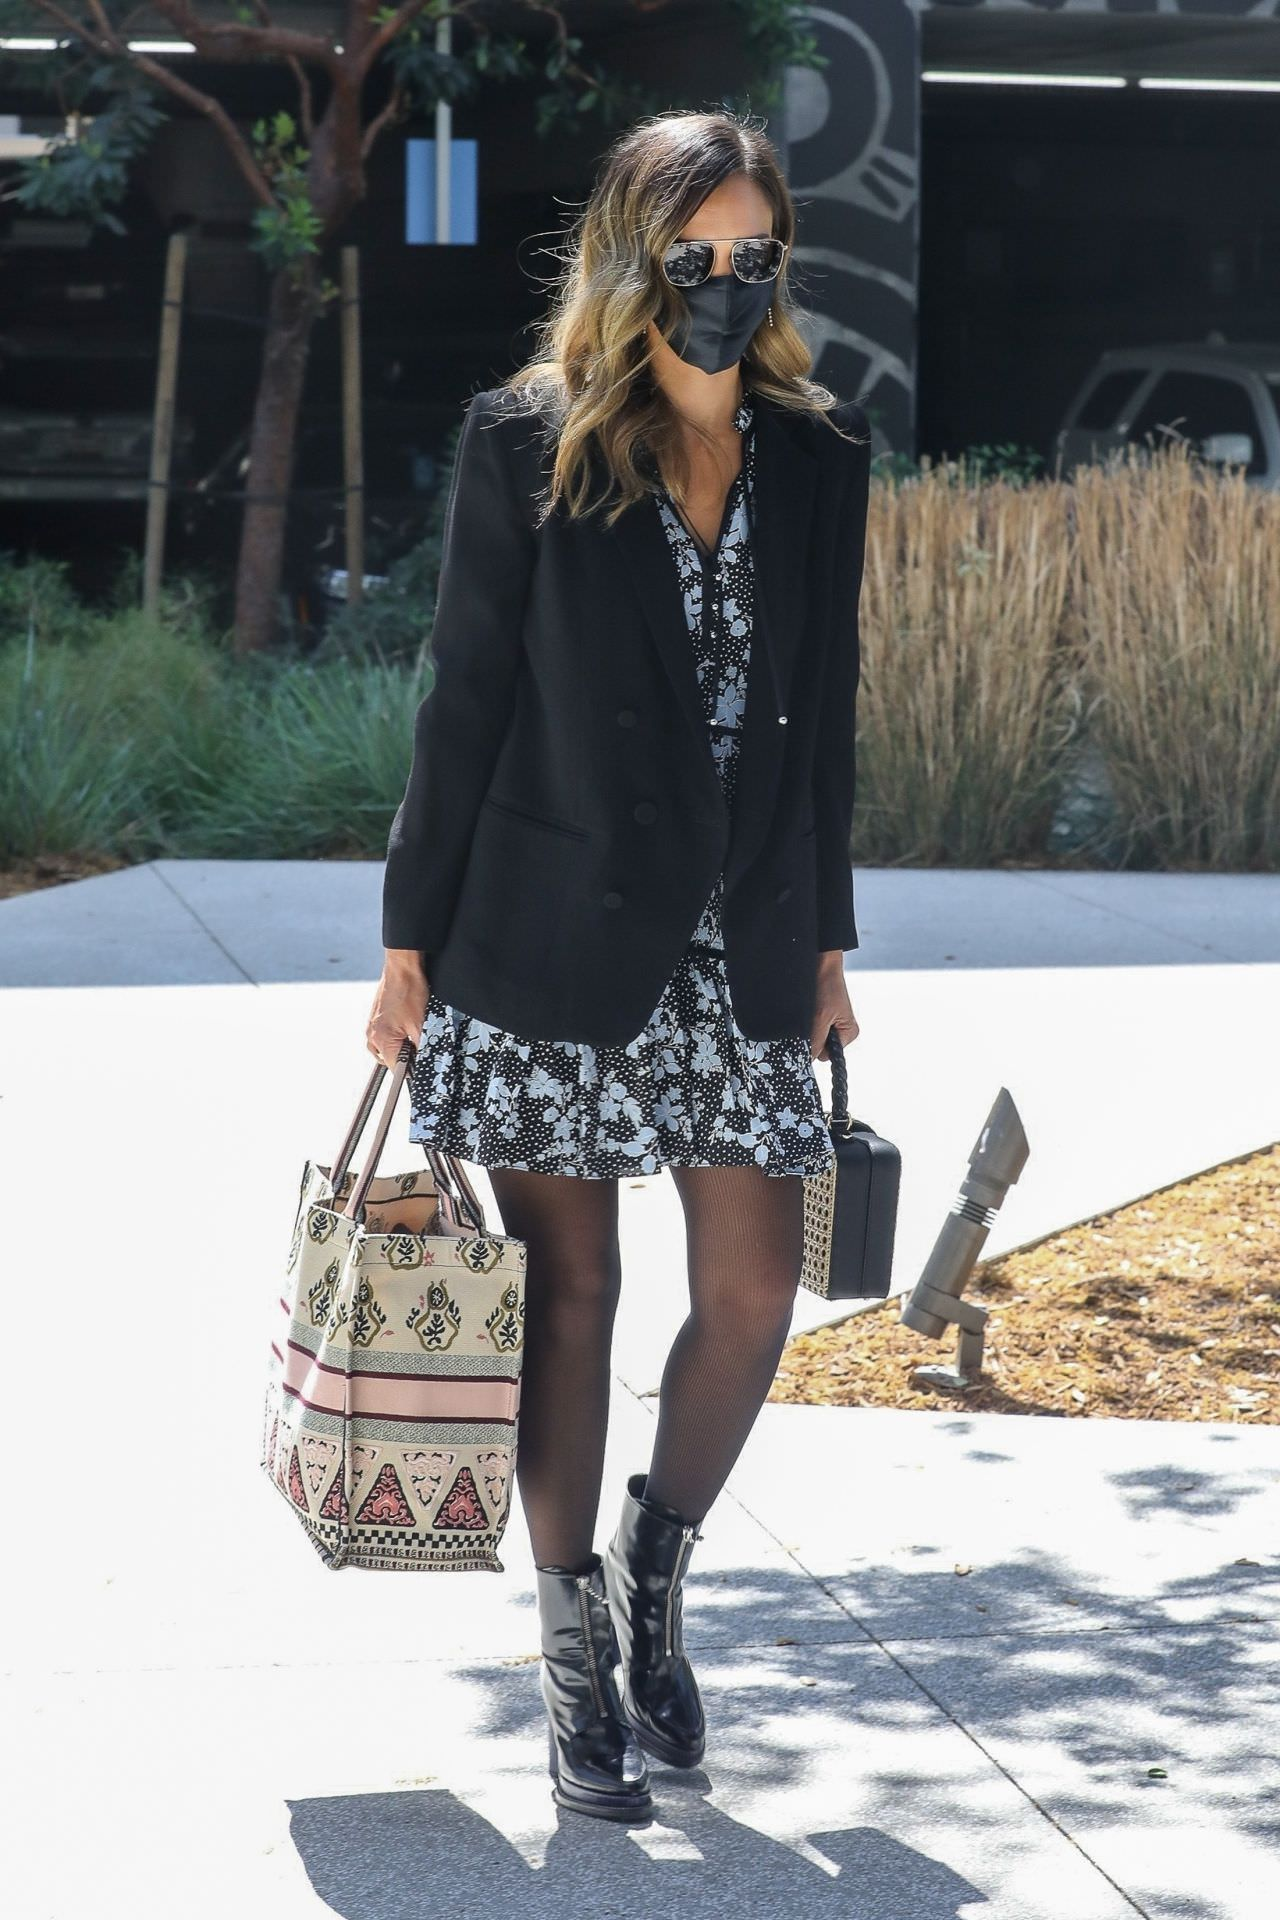 Jessica Alba Looking Stylish in Spring Outfit